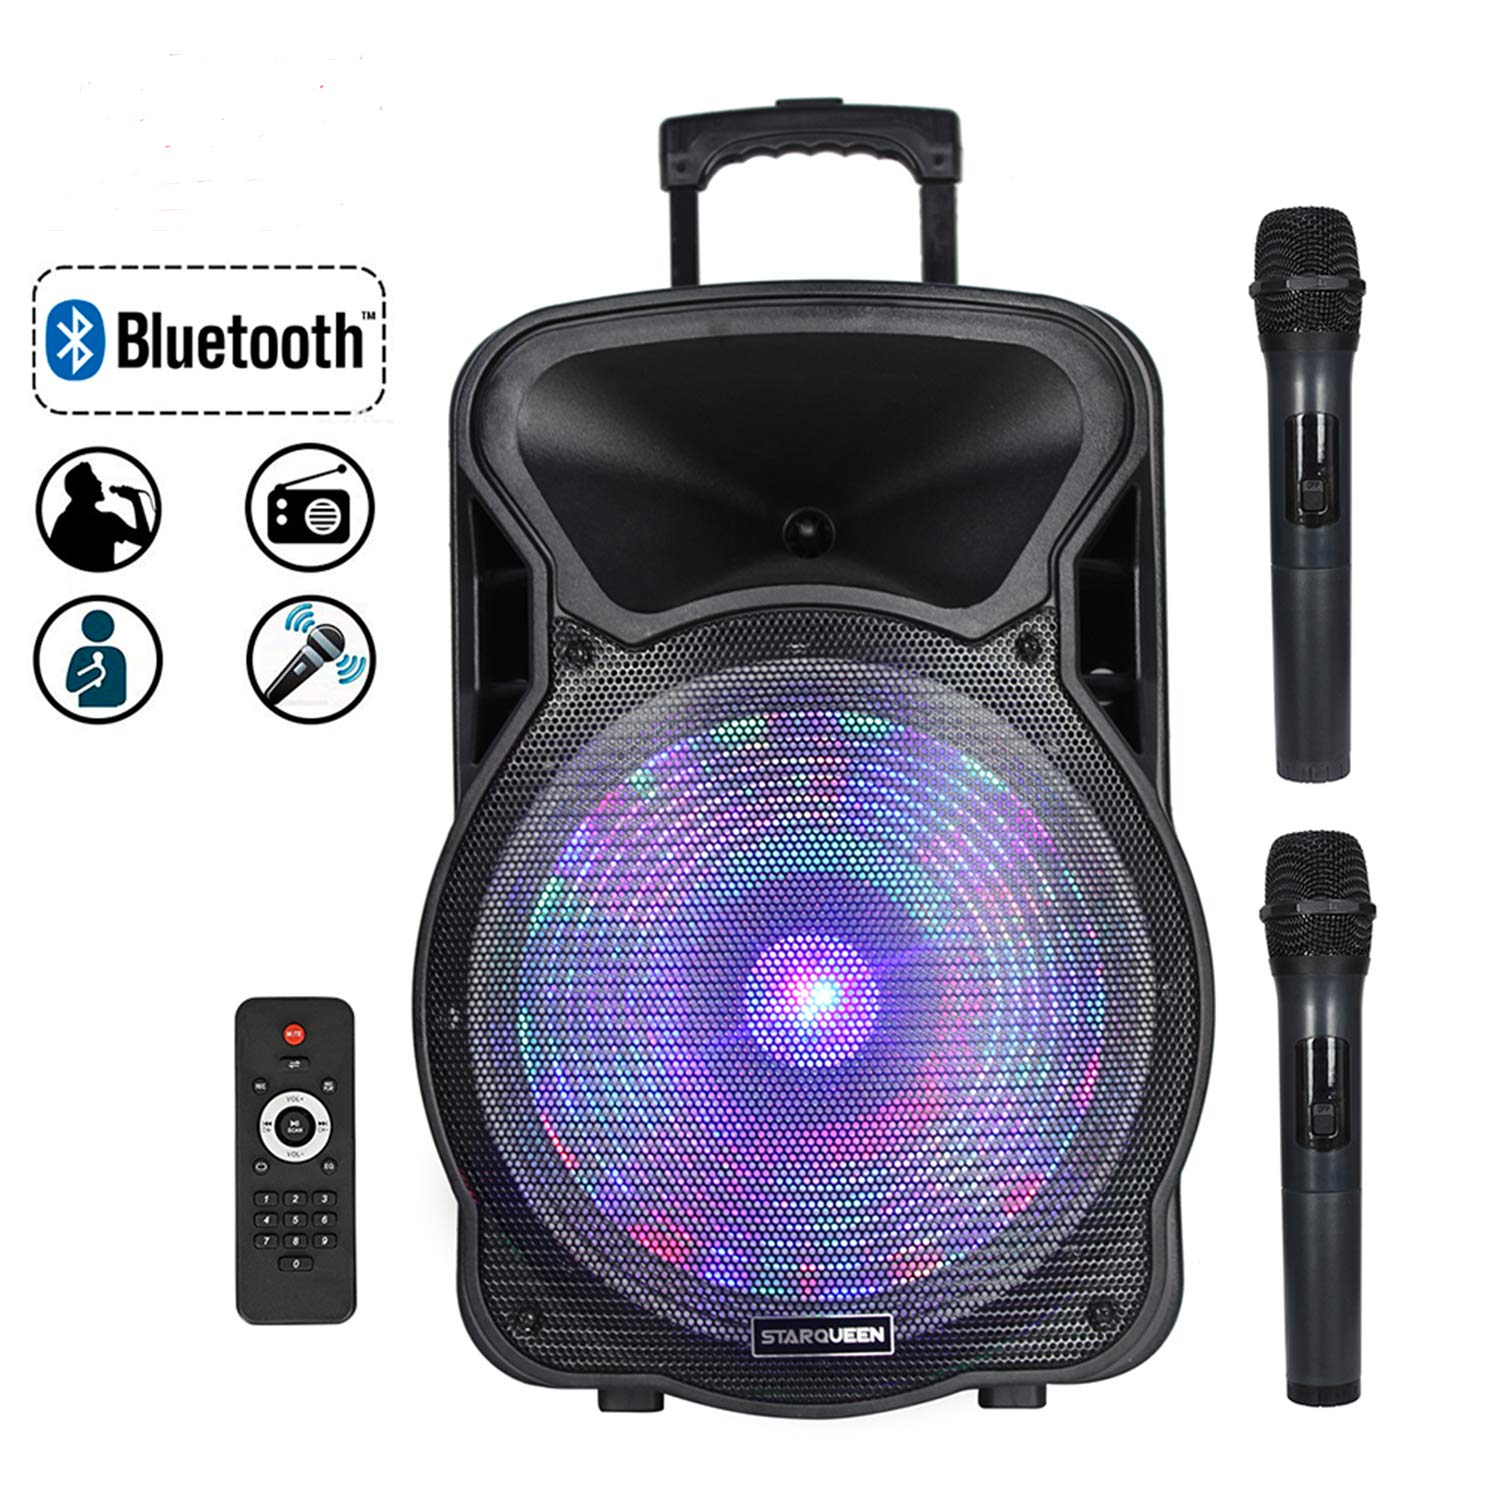 STARQUEEN 15Inch Portable Bluetooth Speaker, Rechargeable PA System with 2 Wireless Microphones/LED Party Lights, AUX/USB/TF Input/FM Radio/Holes for Tripod Stand, Karaoke Amplifier System